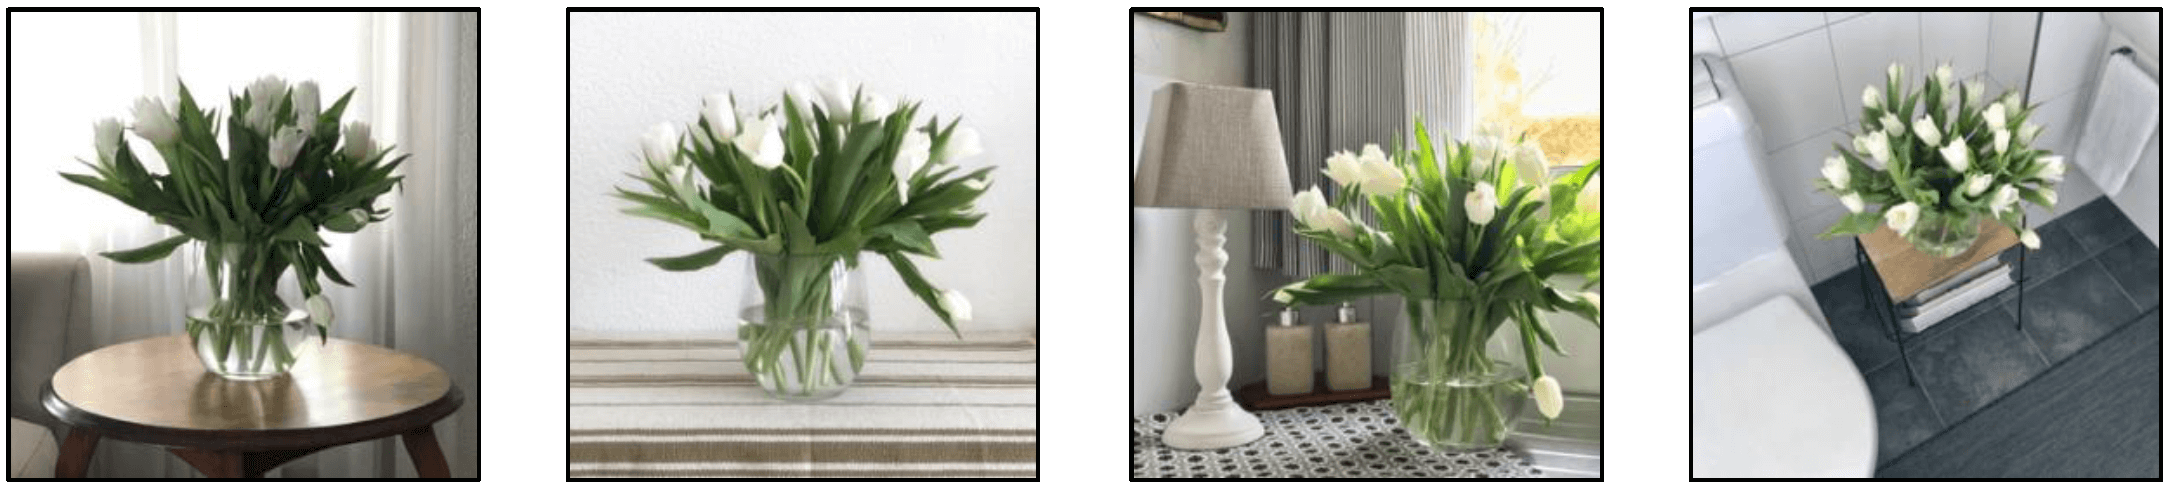 Decorate your home with tulips fpr spring